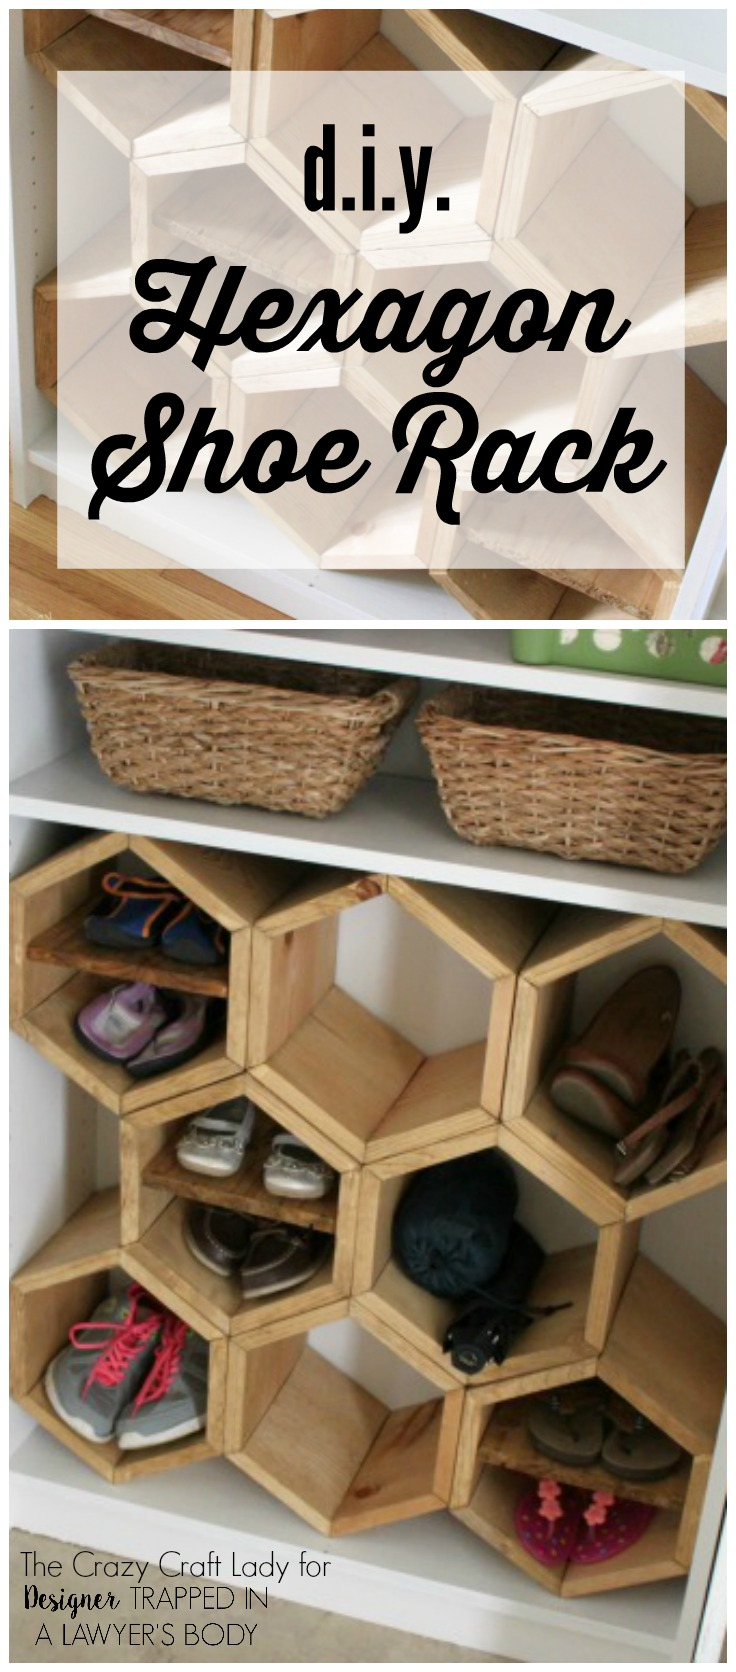 8 shoe storage ideas any shopaholic can appreciate coldwell banker blue matter. Black Bedroom Furniture Sets. Home Design Ideas